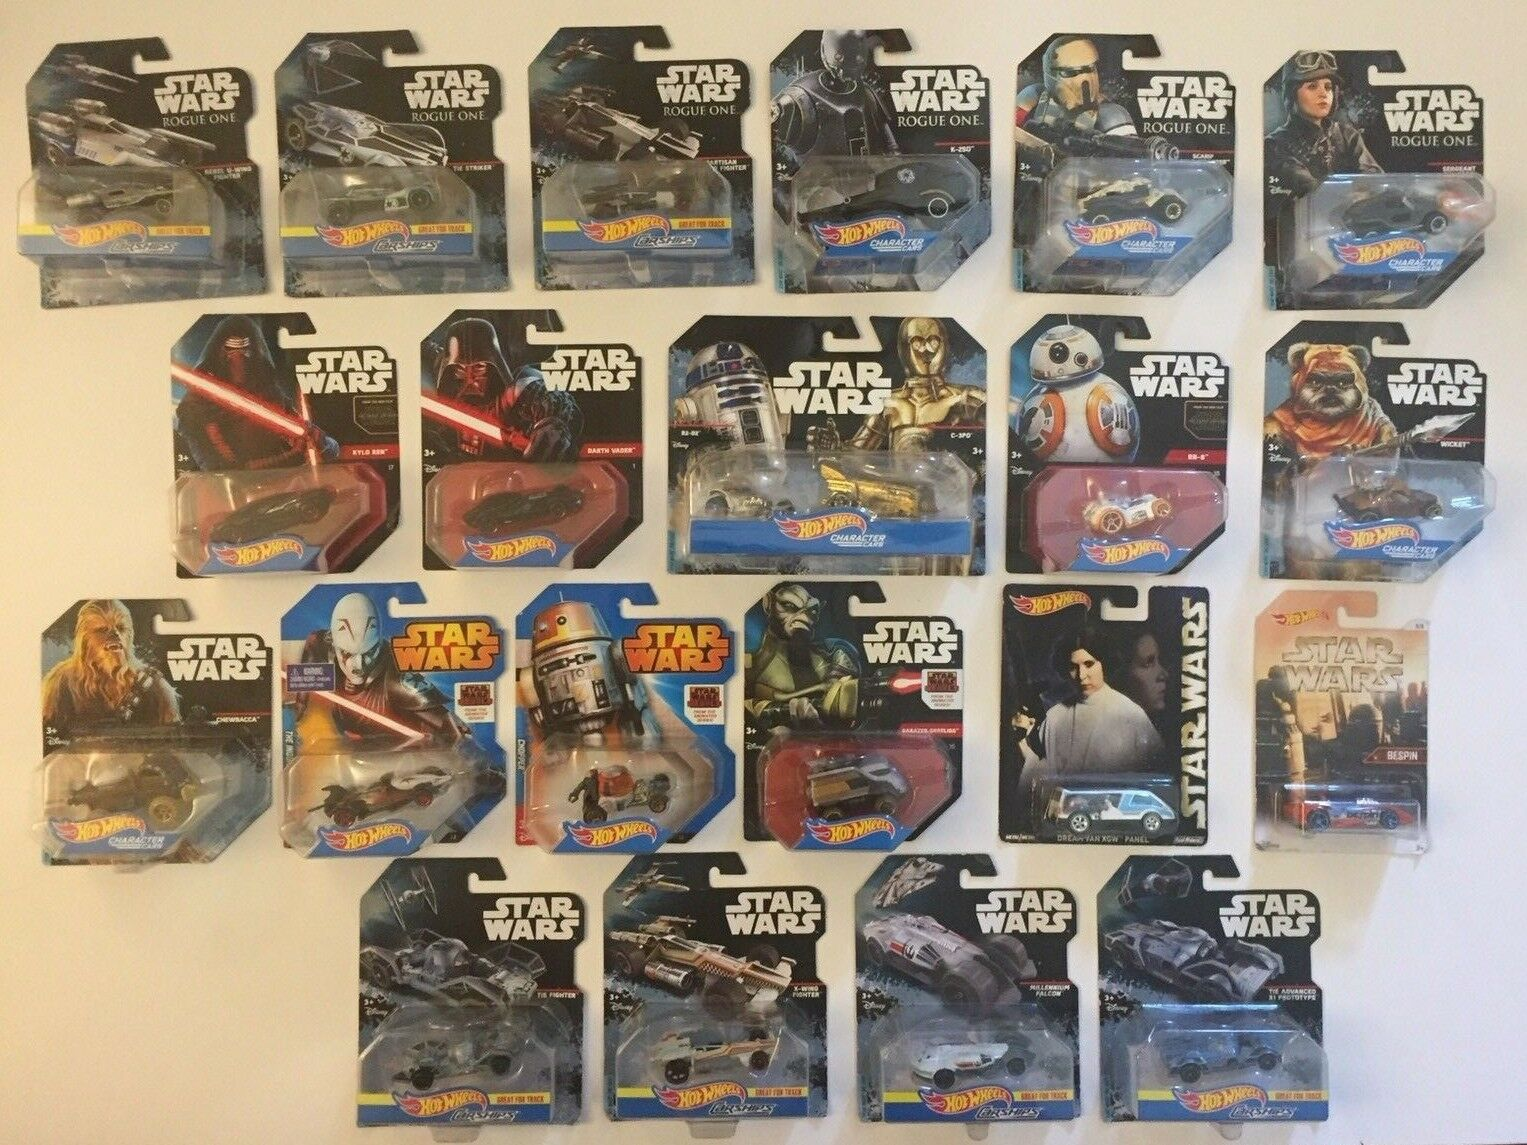 Hot Wheels Star Wars Lot of 22 Vehicles Carship Characters R2D2 Vader Chewy Plus